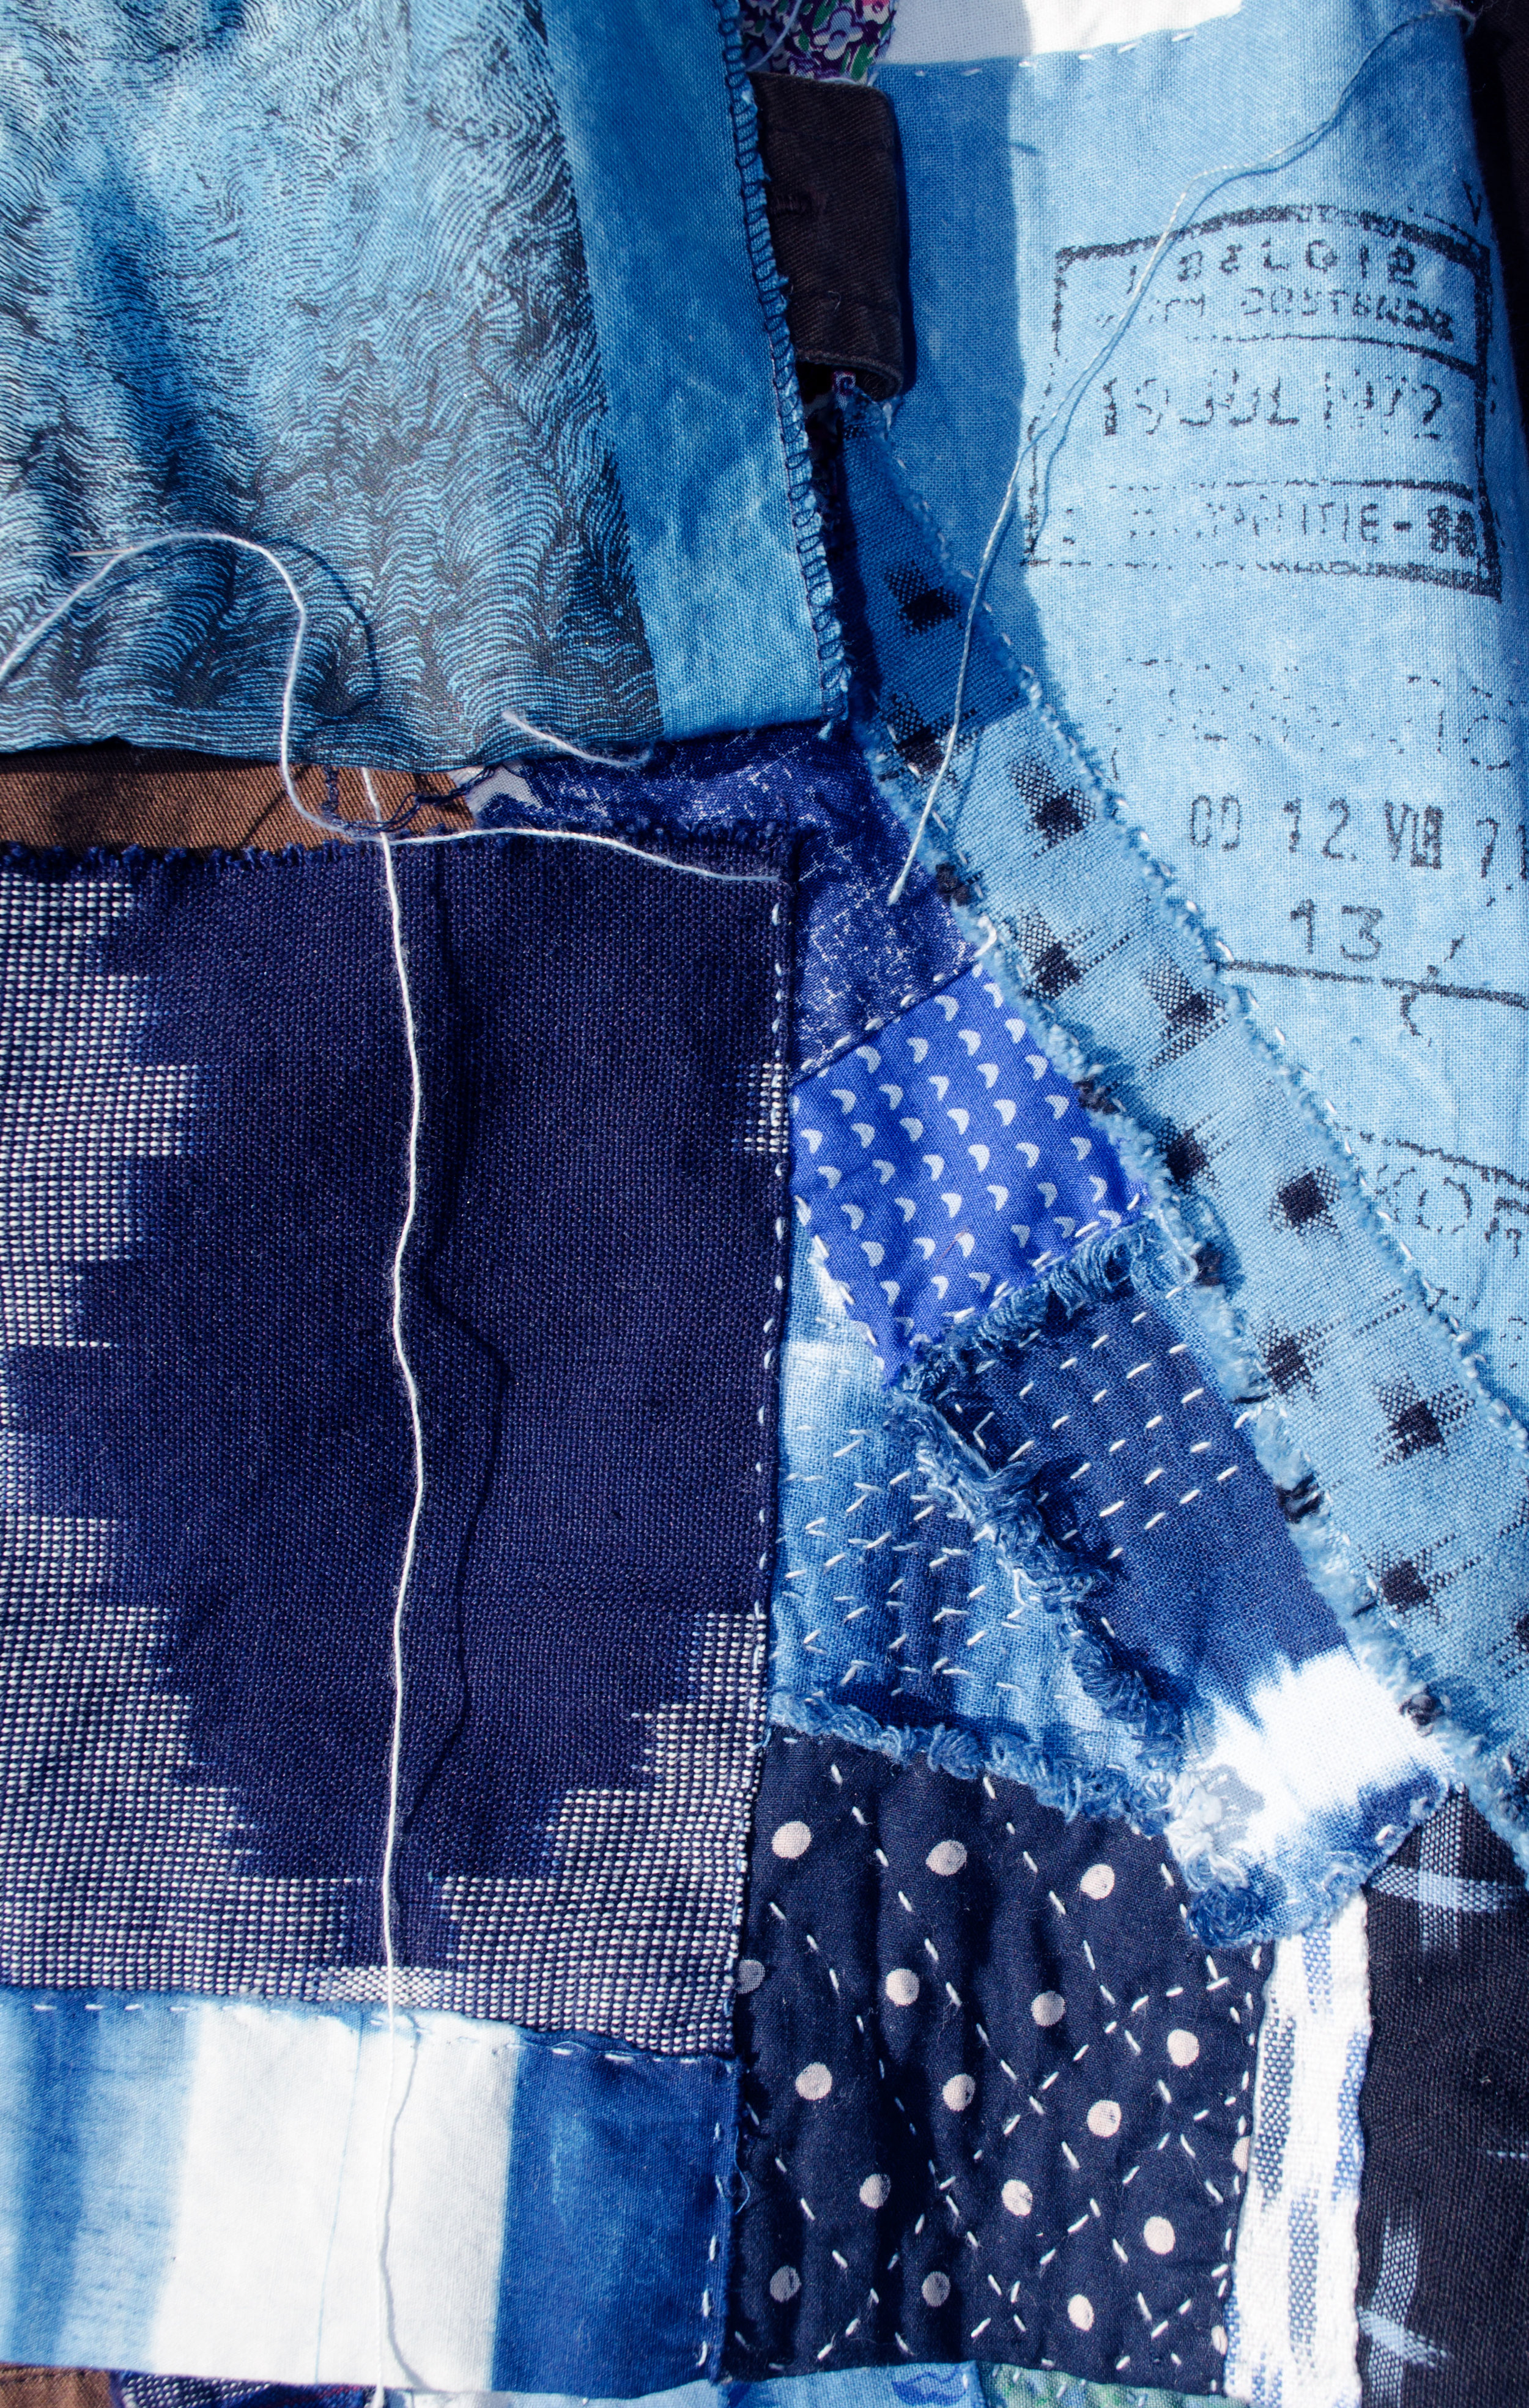 Pieced and patched indigo cottons